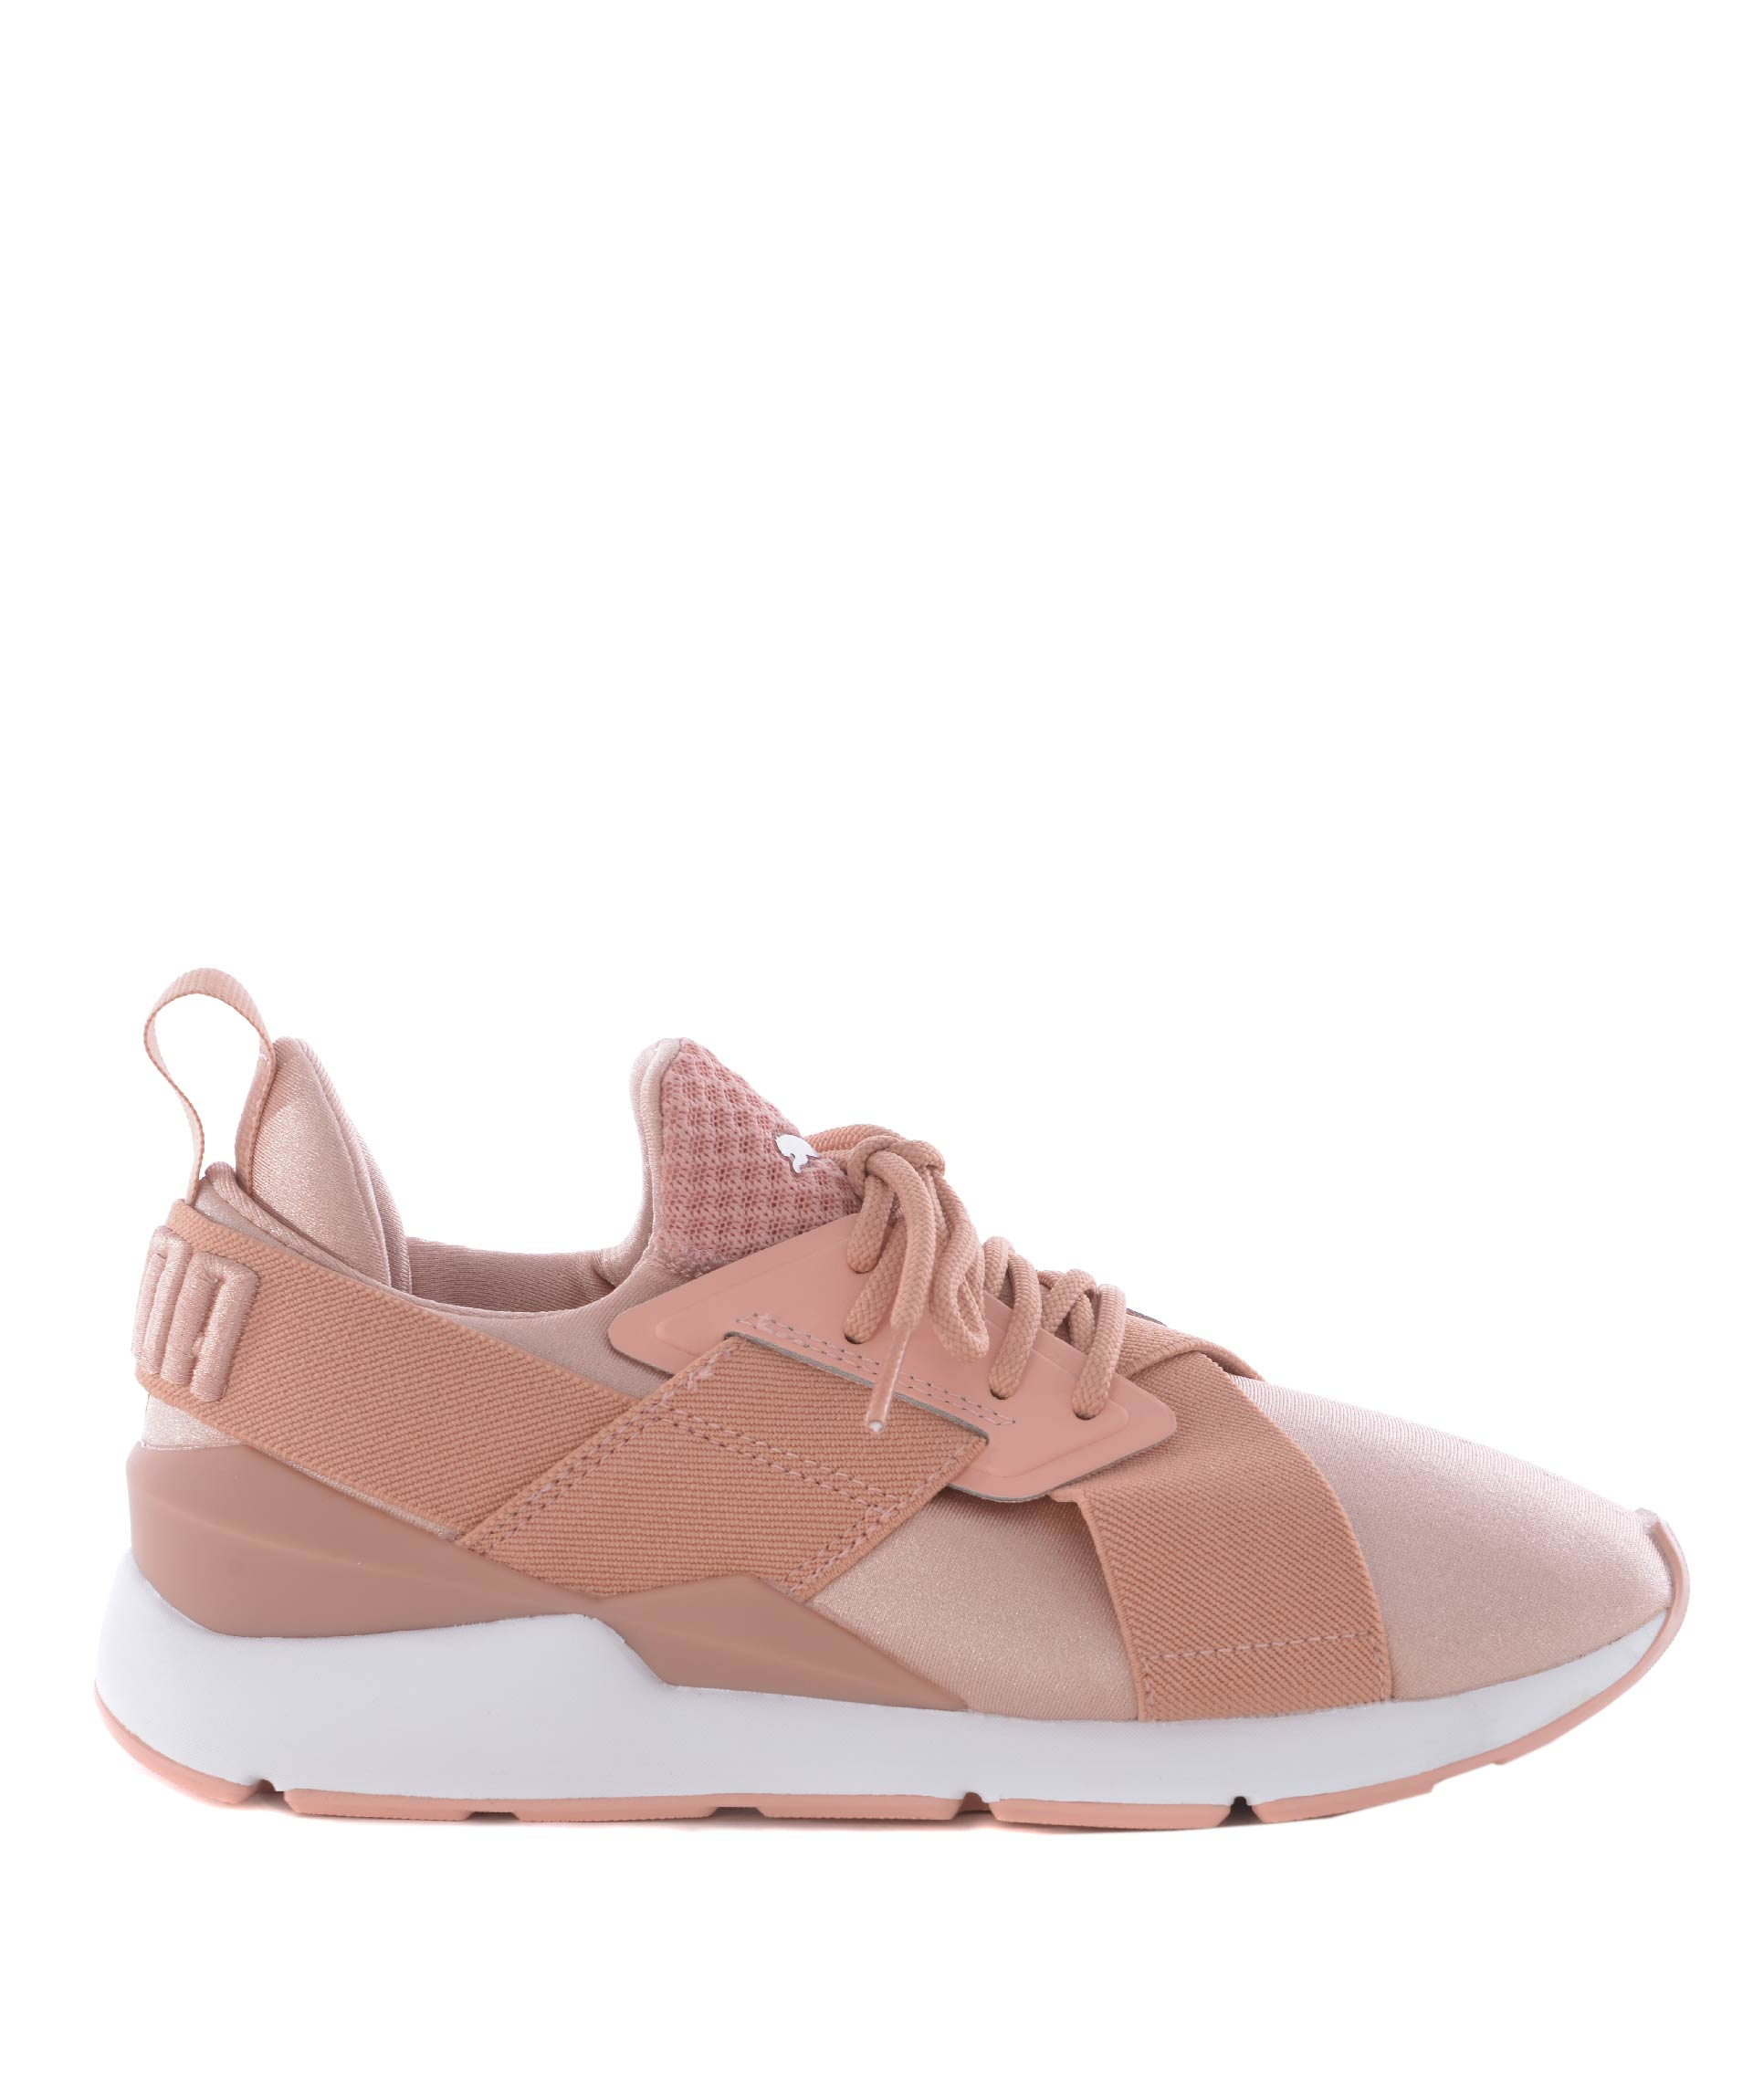 puma snickers donna